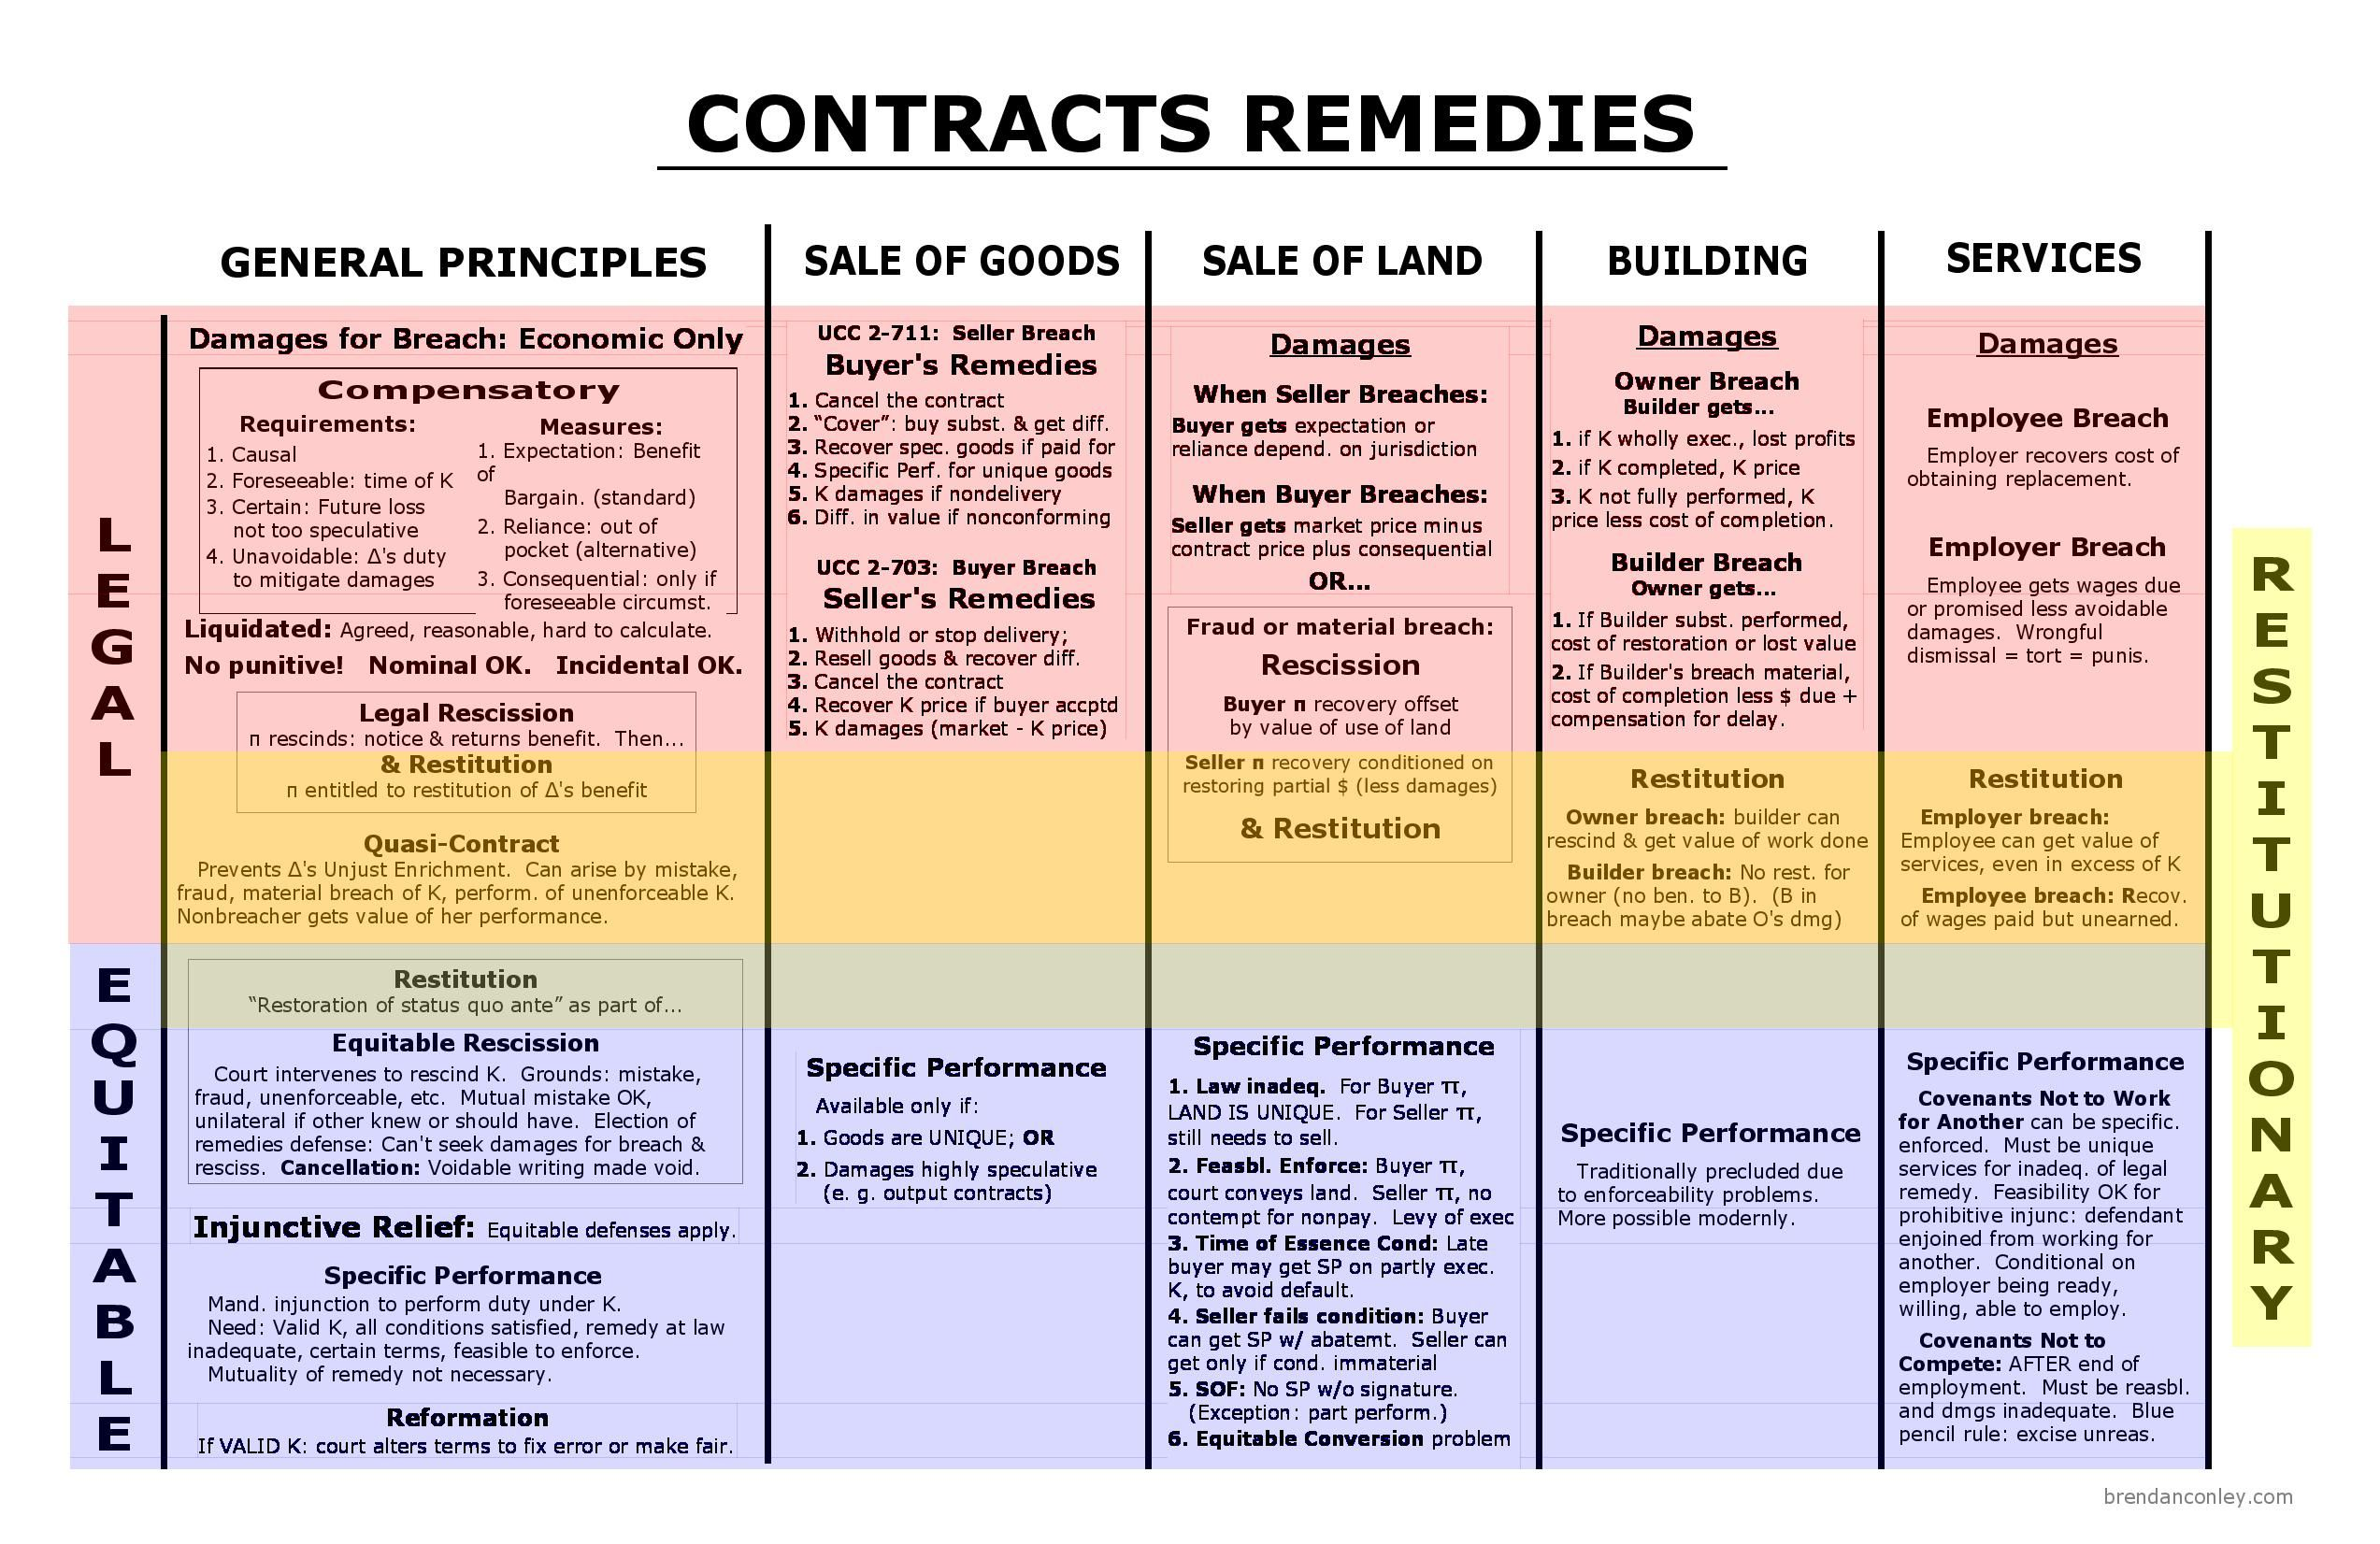 Remedies Big Picture Contract Law Law School Life Exam Study